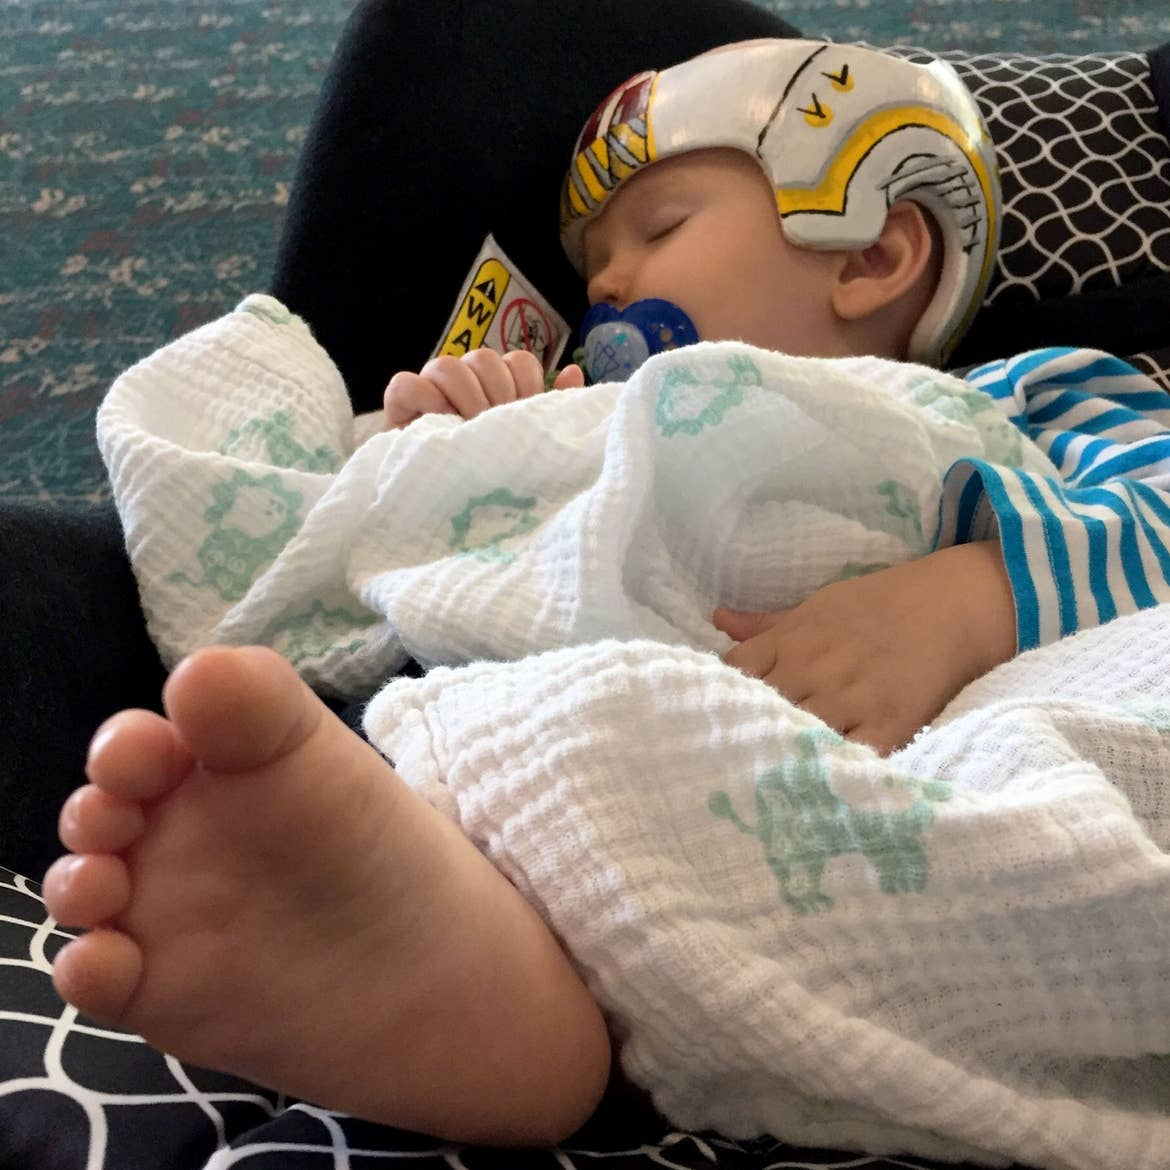 Sarah's son, Logan, sits bundled in his car seat as they await to board the airplane.